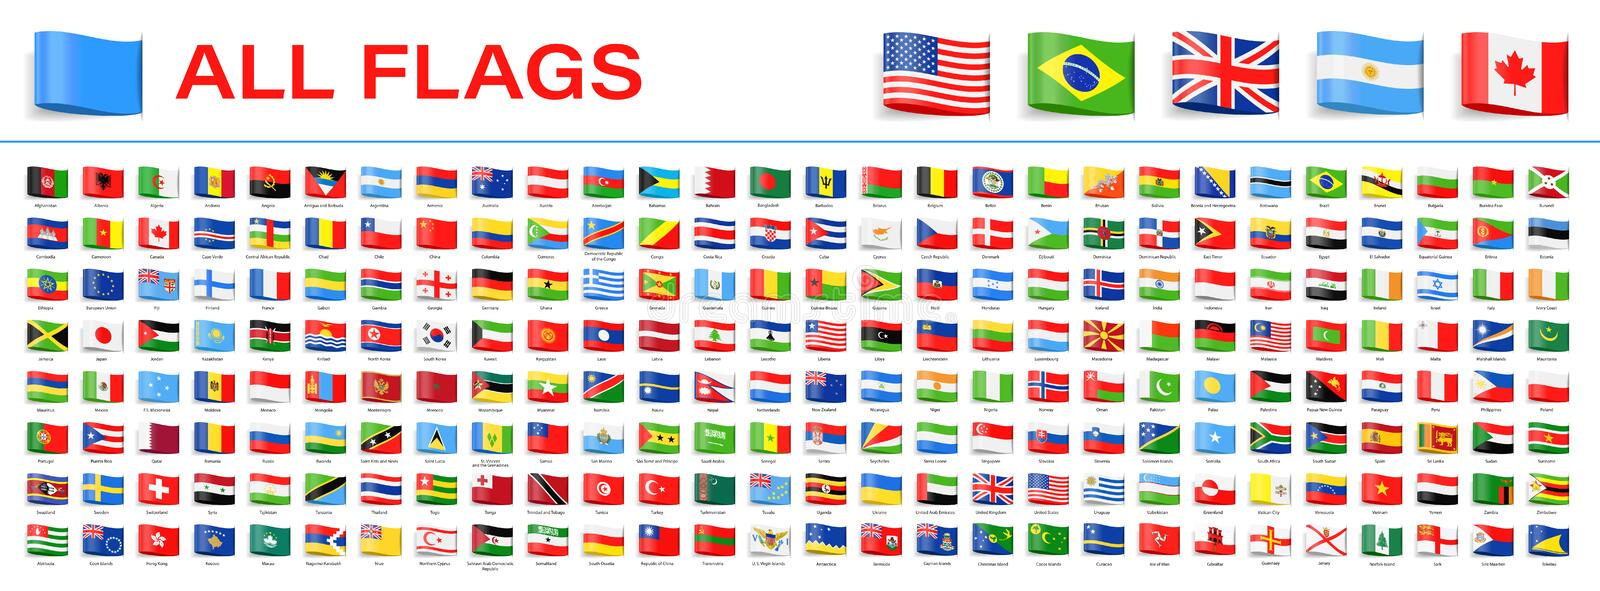 All World Flags - Vector Tag Label Flat Icons. 2020 versions of flags royalty free stock image